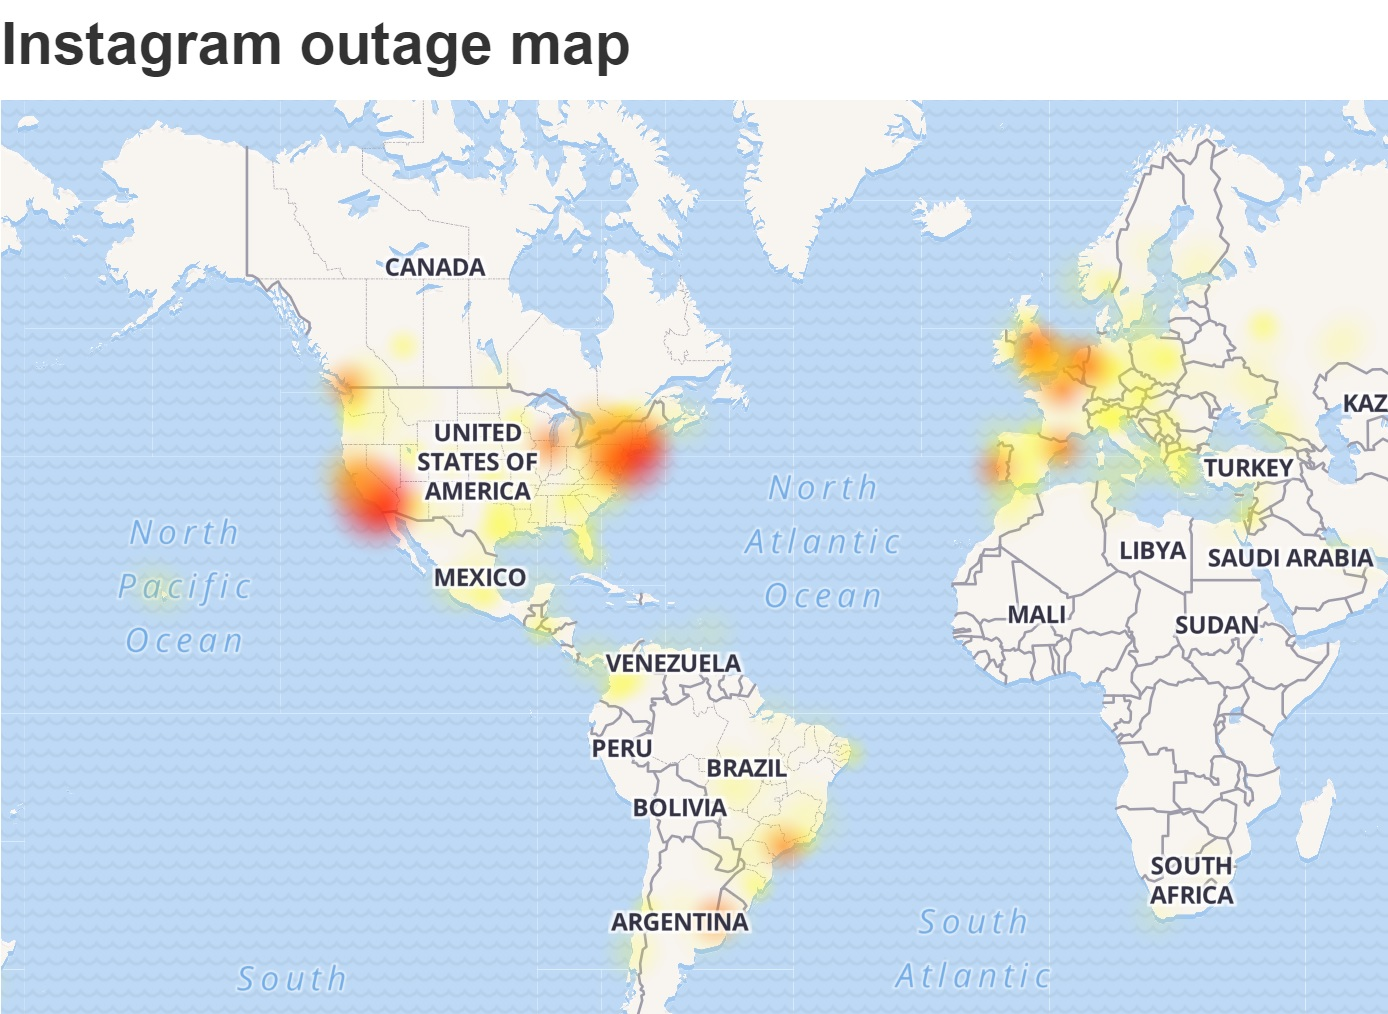 Instagram down: Instagram outage affected its website and mobile app